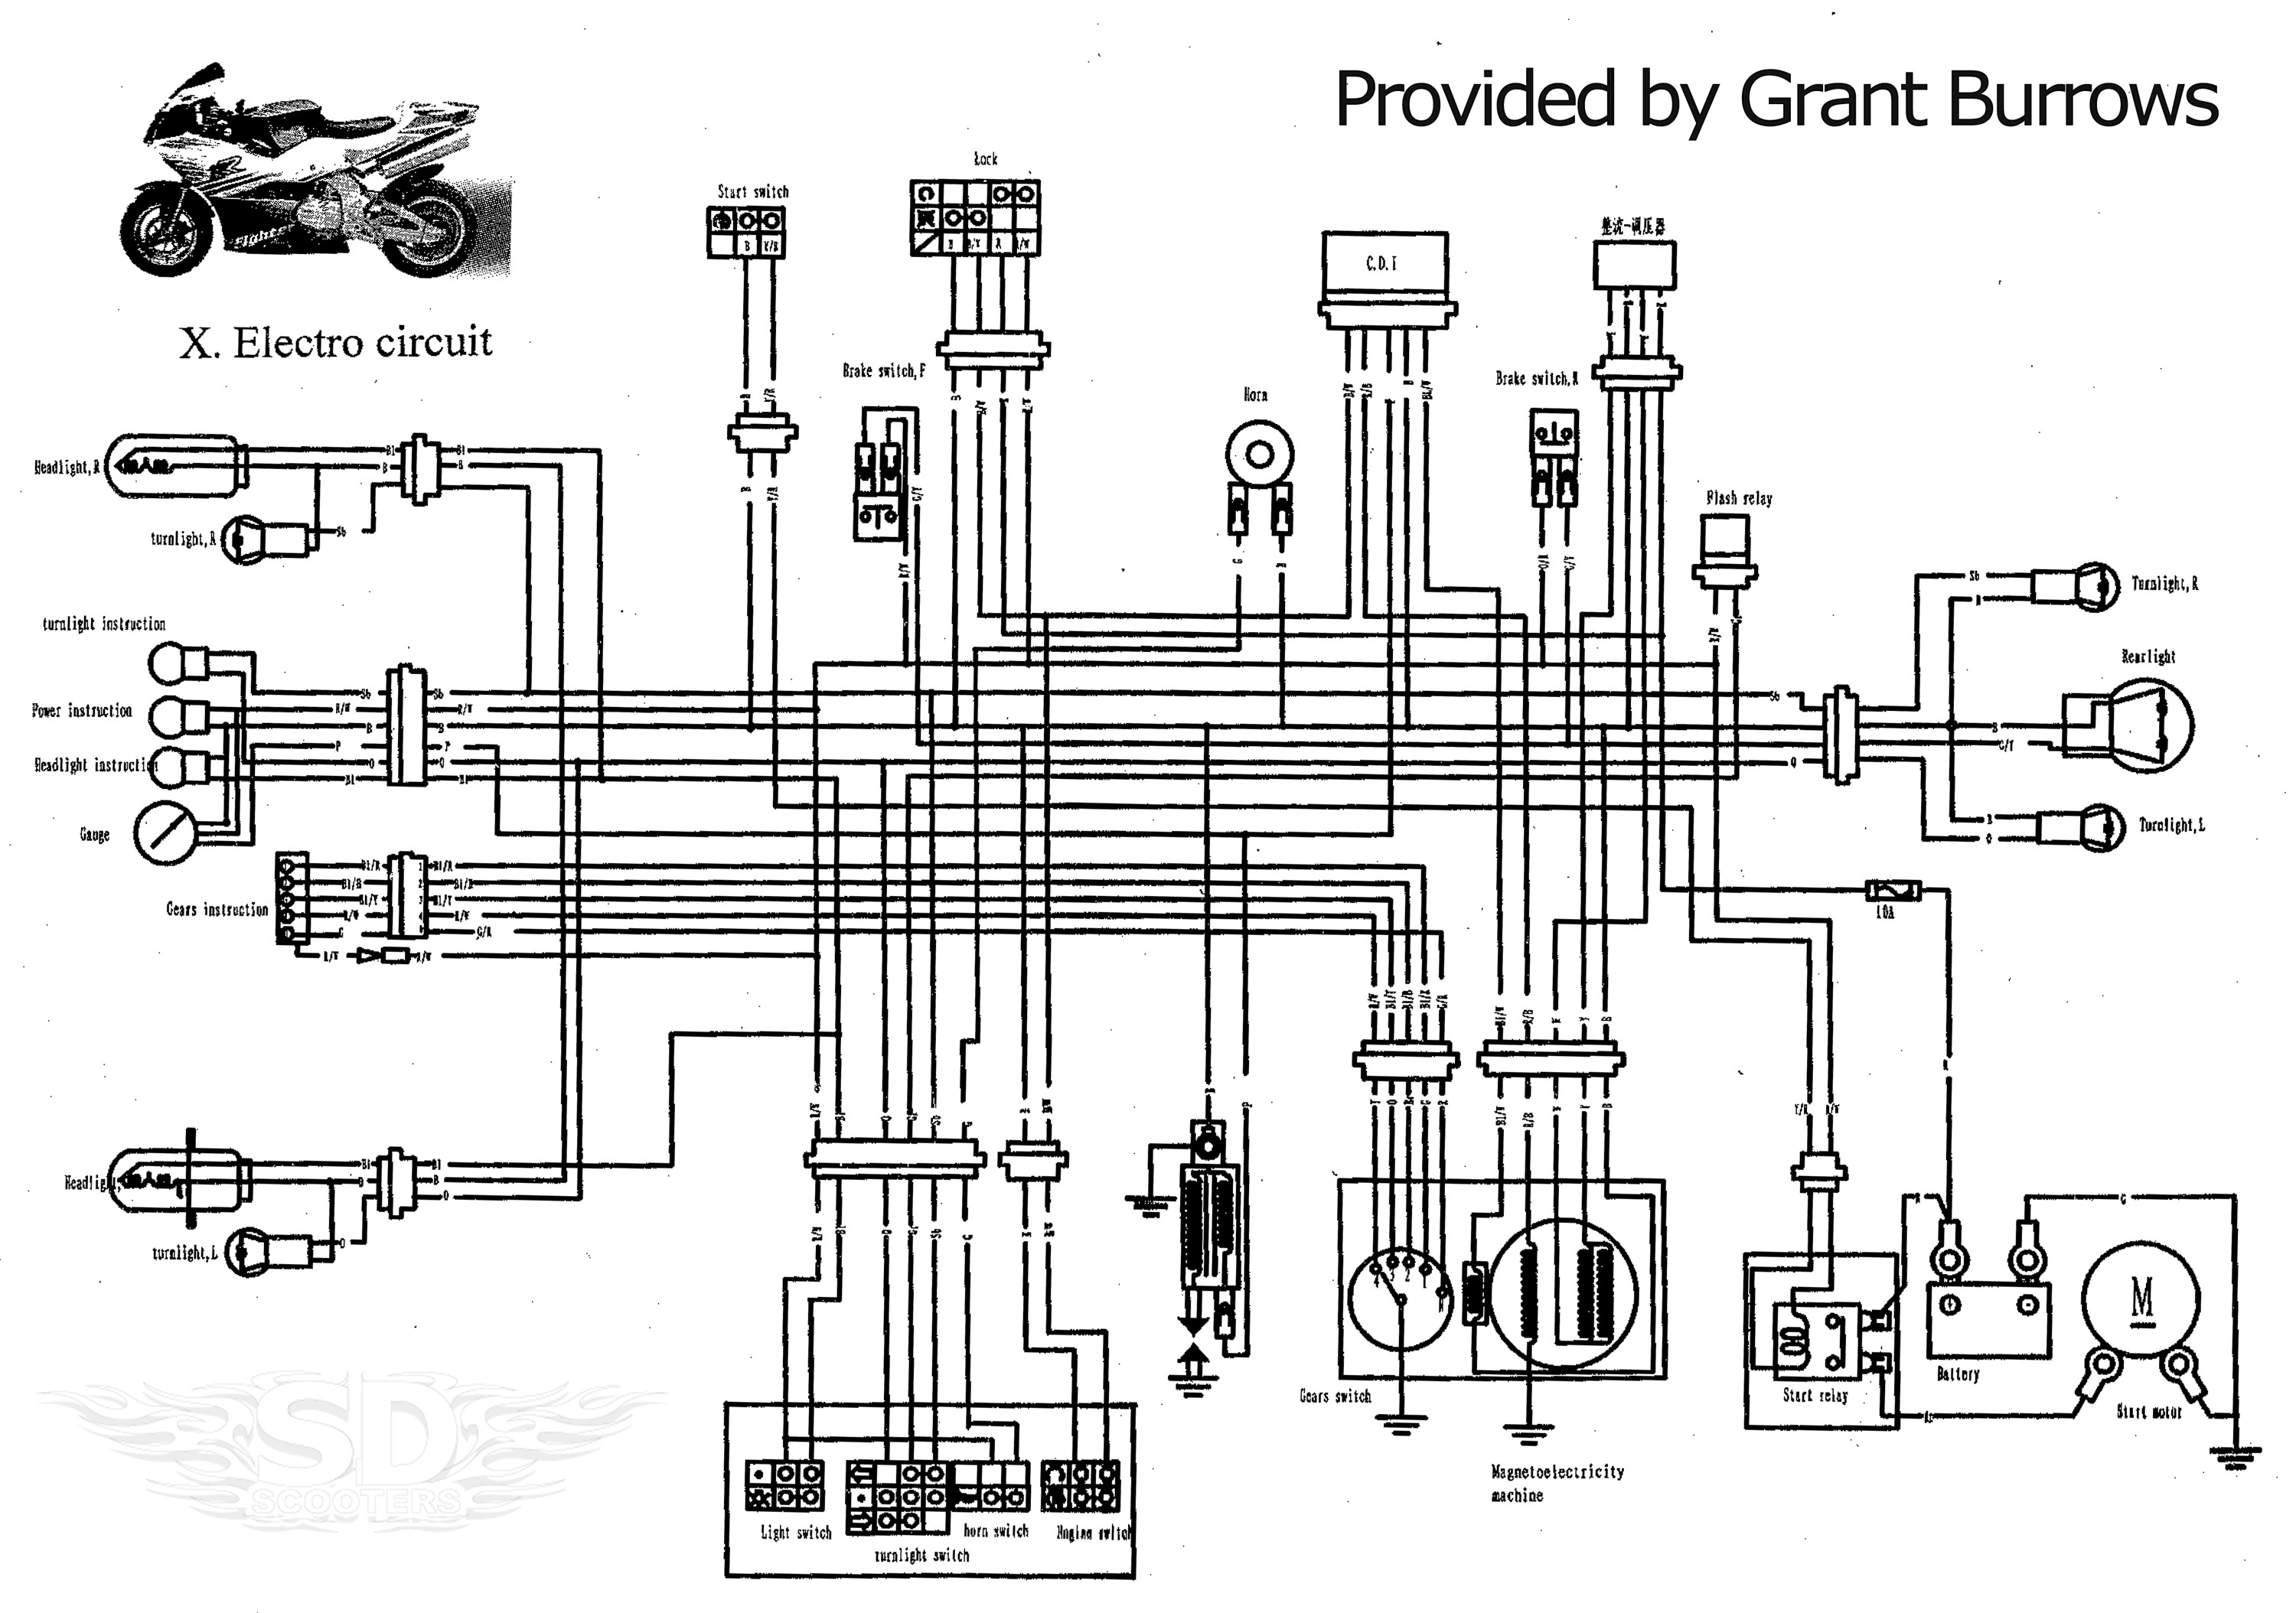 Pocket Bike Wiring Diagram Image X22 Provided By Grant Burrows